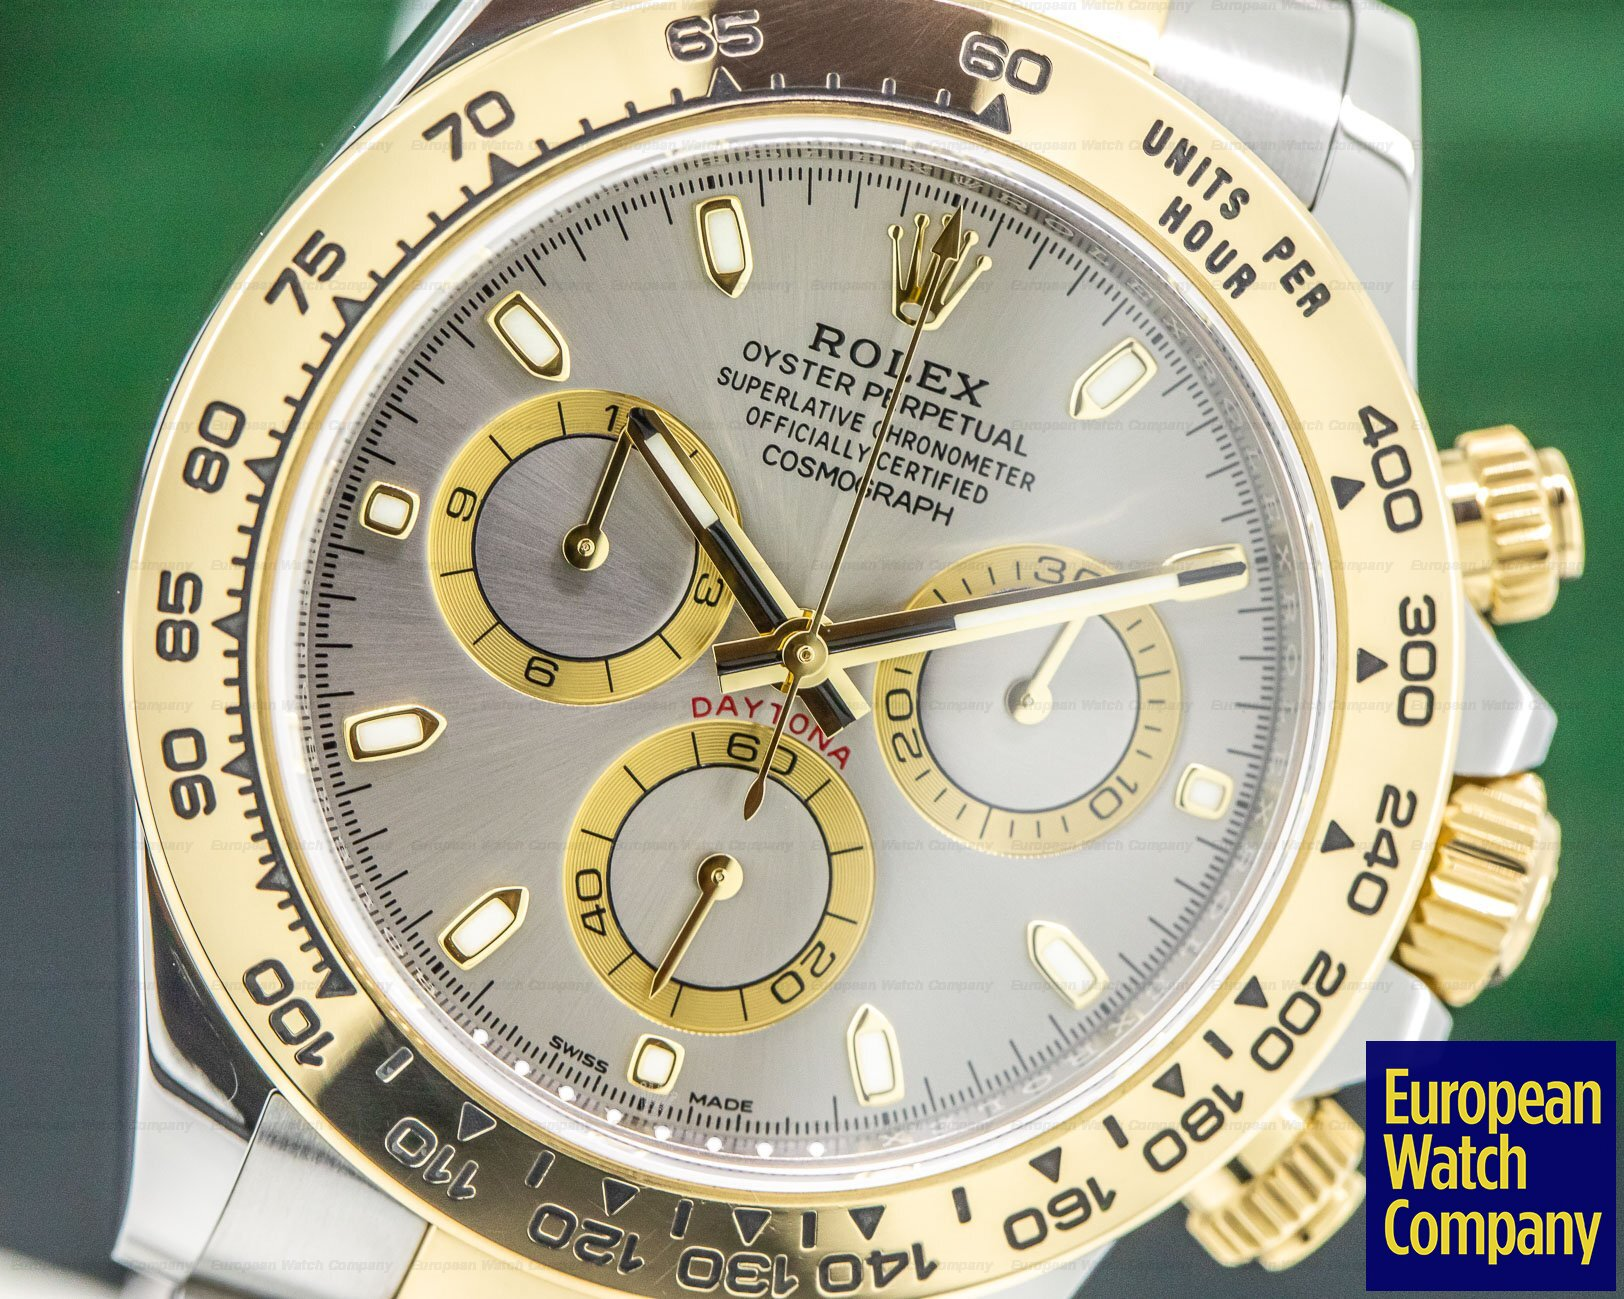 Rolex 116503 Daytona Slate Grey Dial 18K Yellow Gold / SS